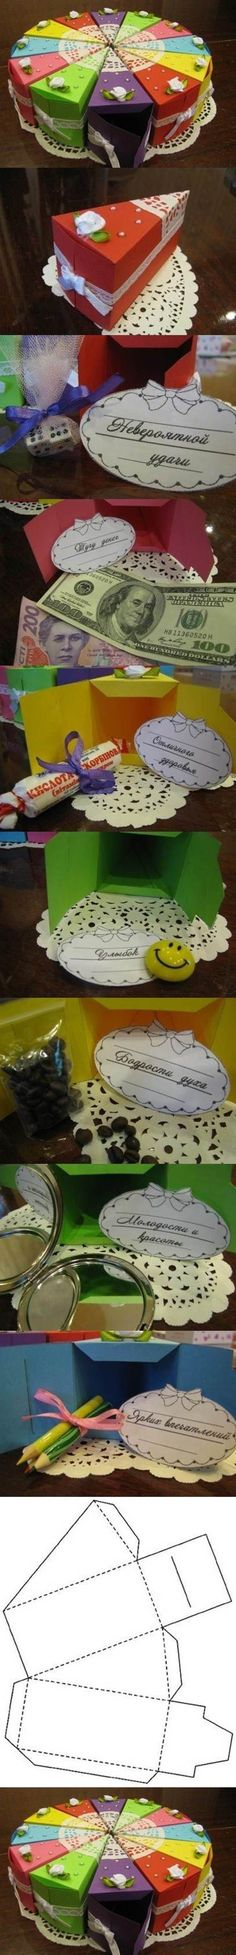 DIY Cake Shaped Gift Boxes Wouldn't this be cute for Primary Birthdays, YW Birthdays, etc? Craft Gifts, Diy Gifts, Diy And Crafts, Paper Crafts, Diy Cake, Creative Gifts, Creative Ideas, Homemade Gifts, Cute Gifts